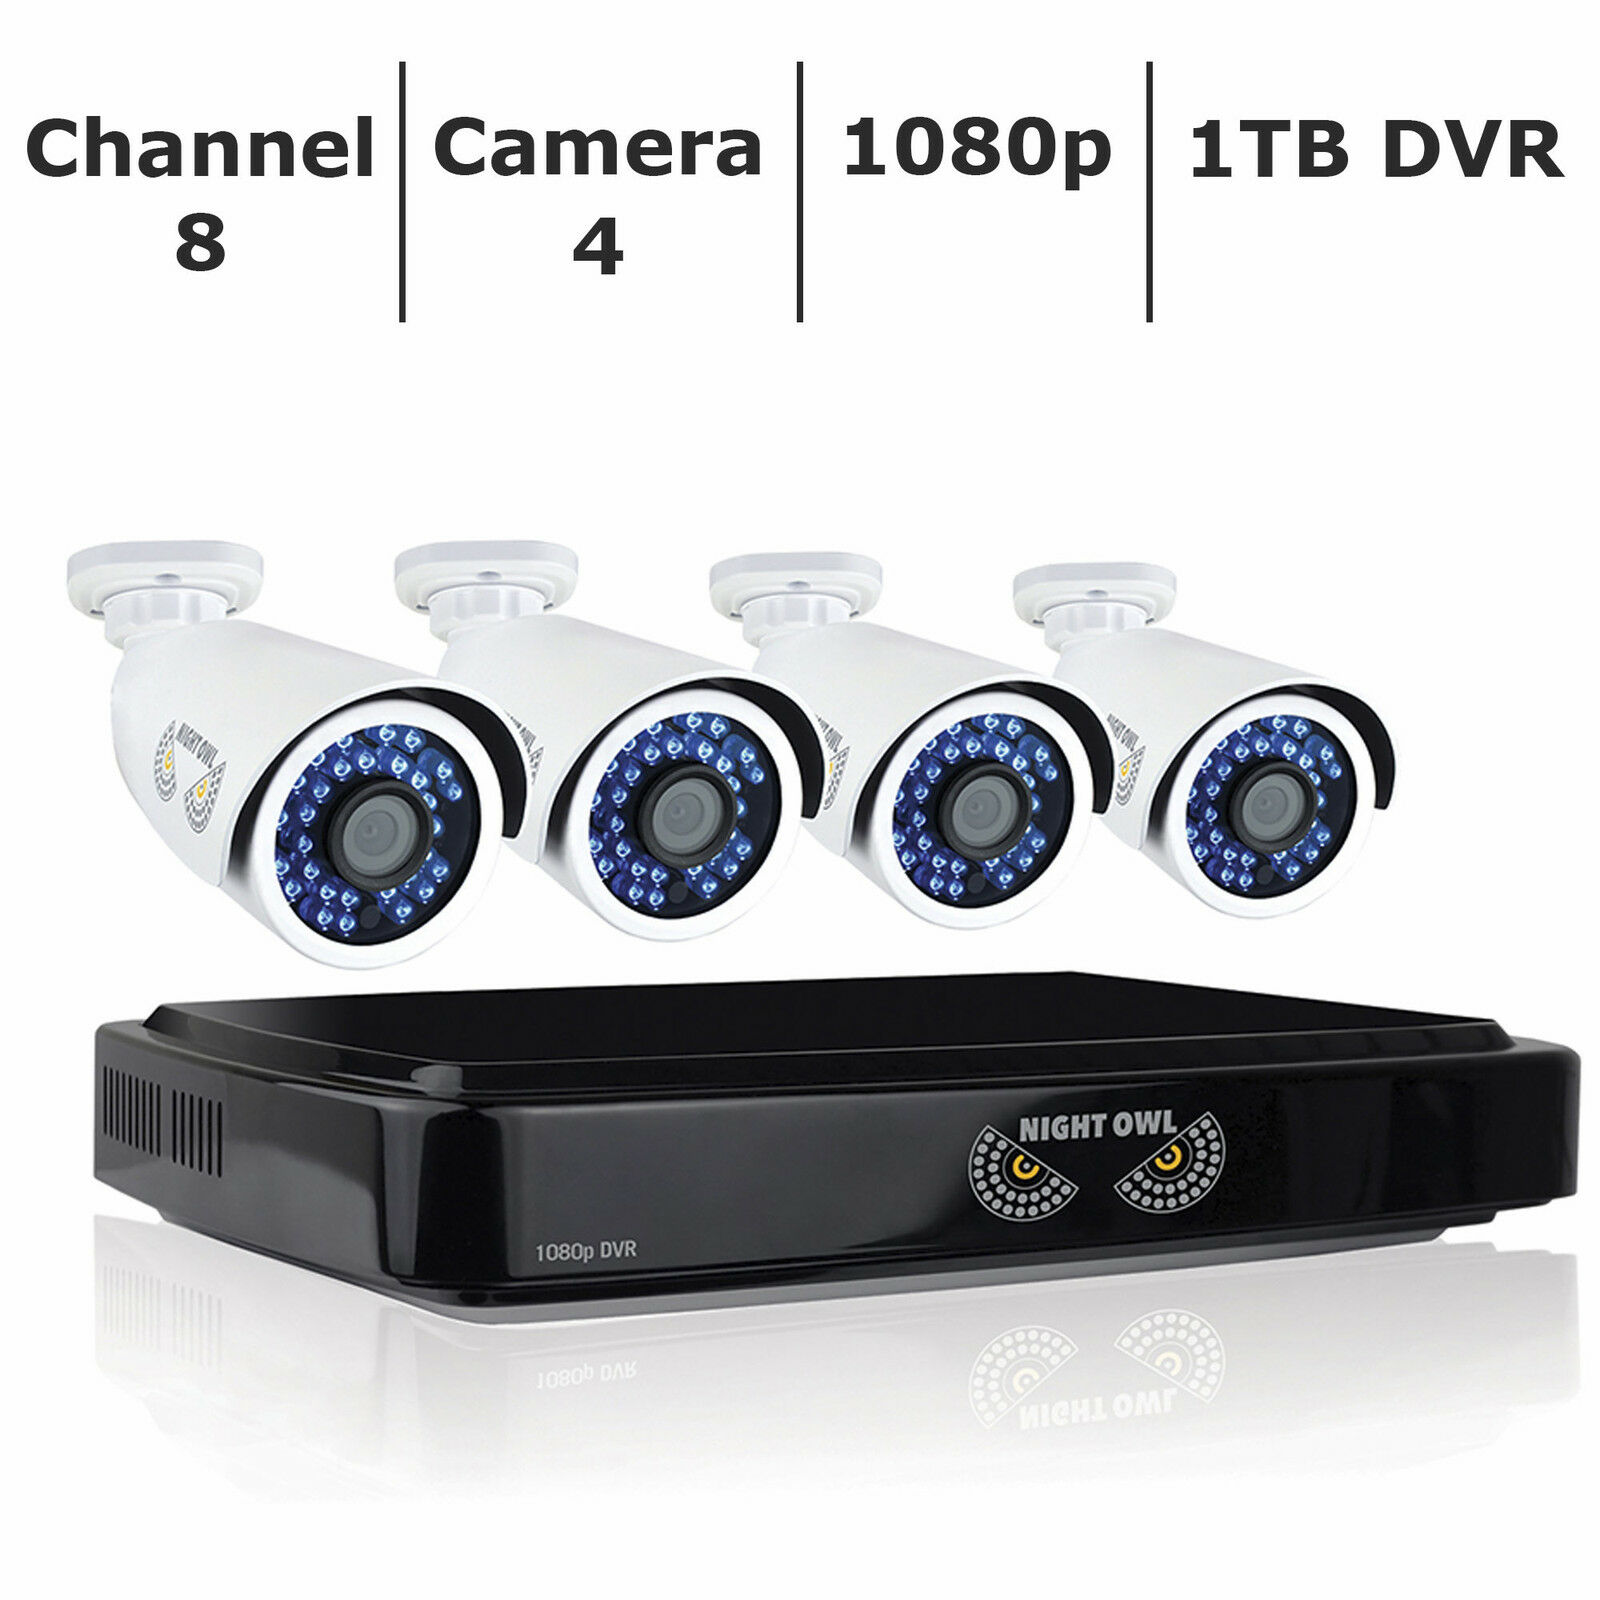 New Night Owl 8-Channel 4-Camera 1080p Smart Security System with 1TB HDD DVR